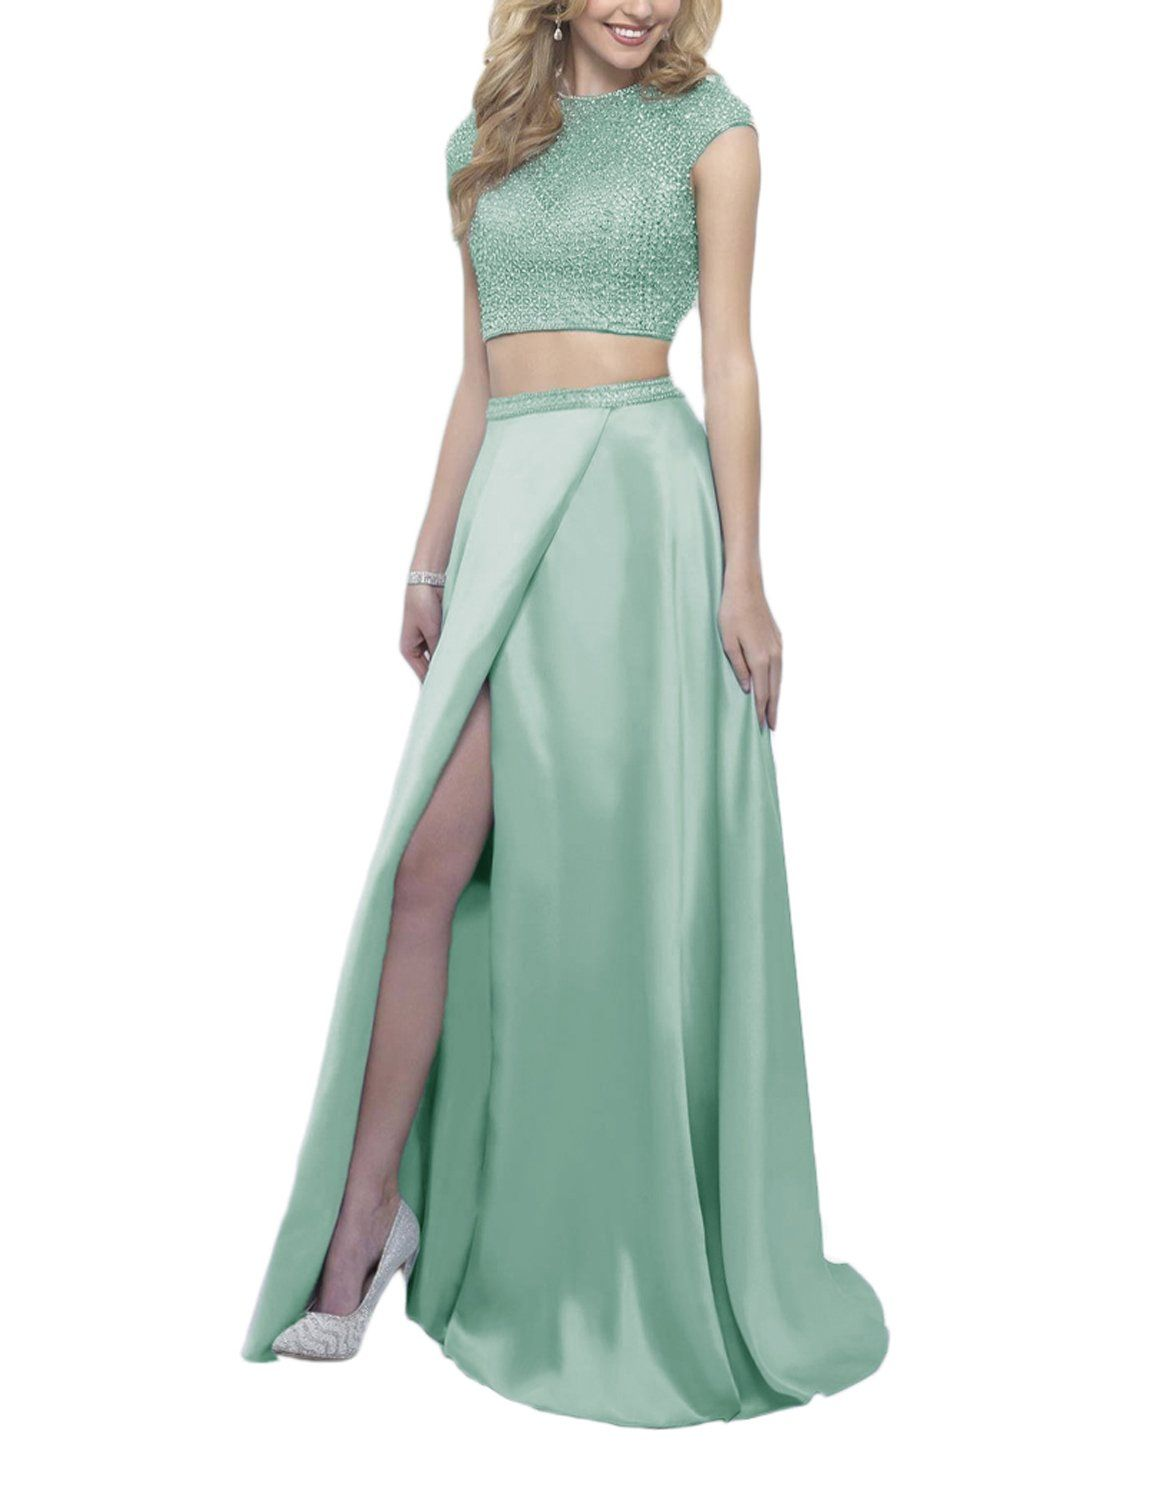 Gardenwed cap sleeves beading two pieces long prom dress satin